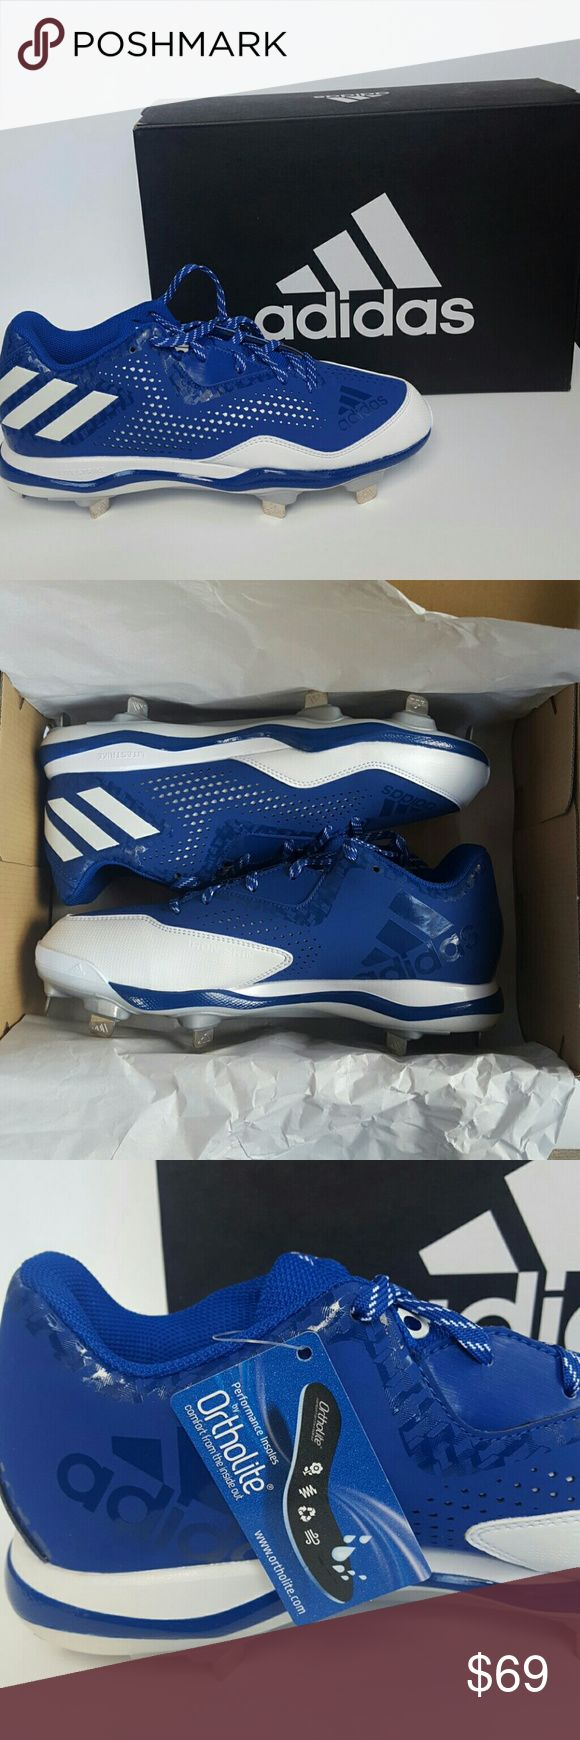 athletic shoes on sale blue adidas baseball cleats